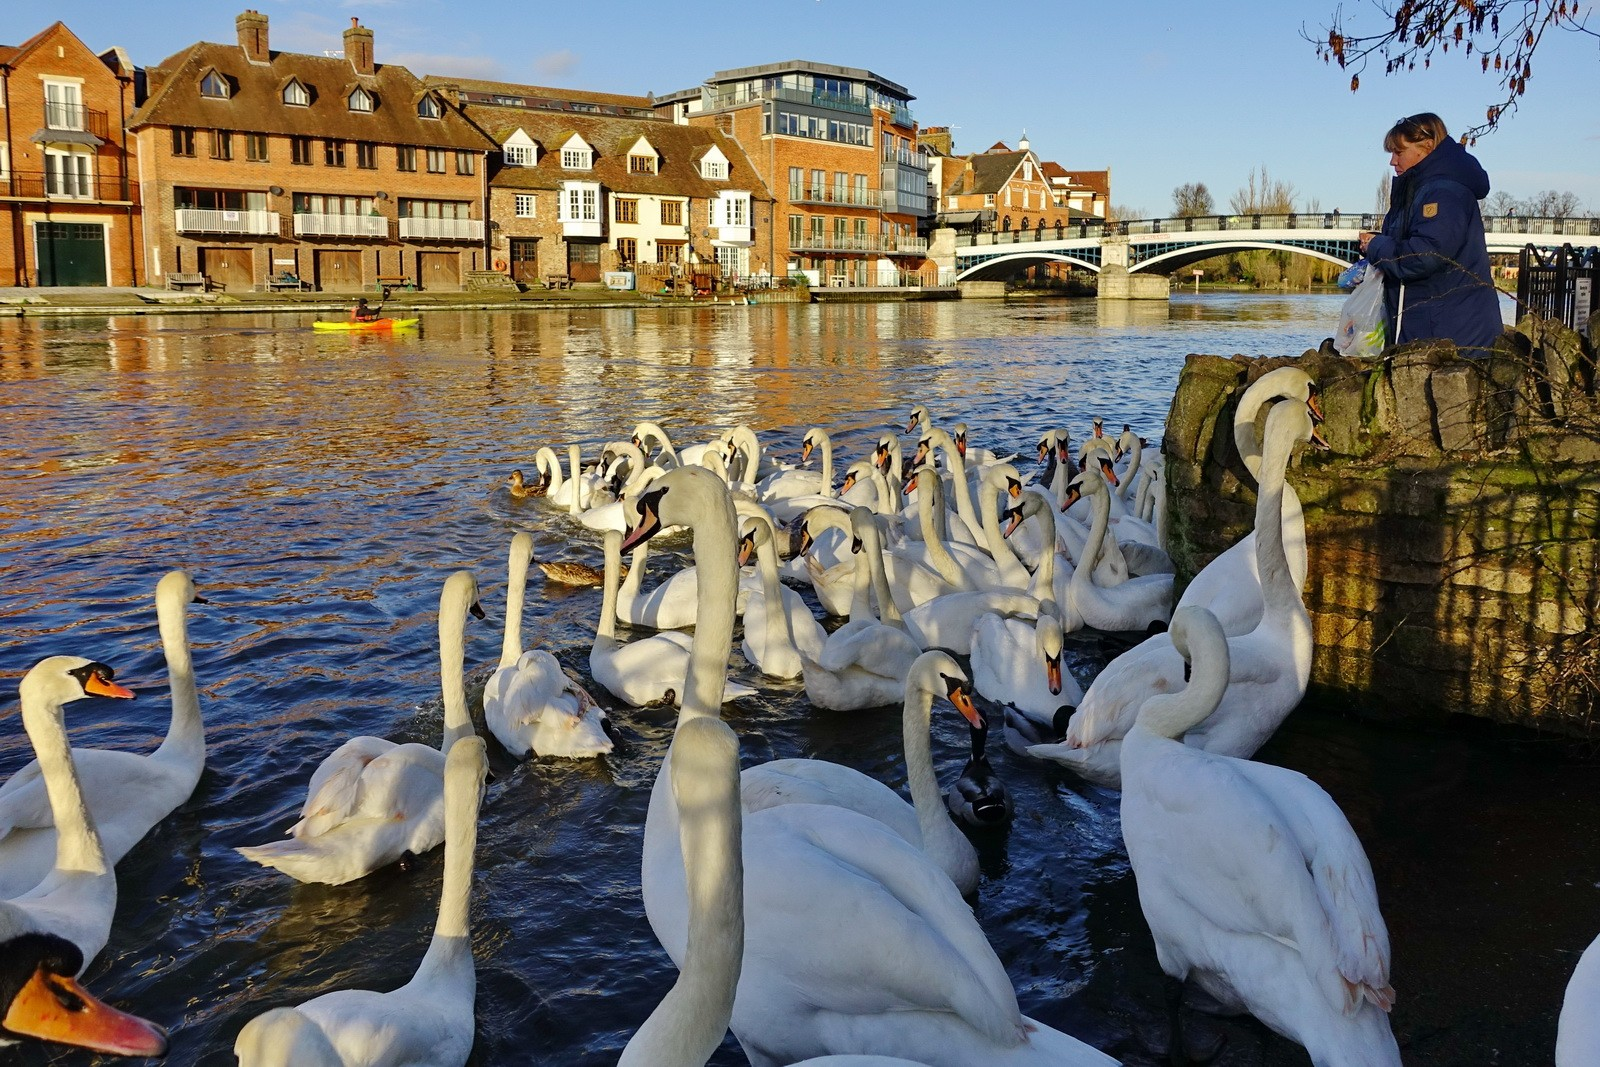 The White Swans of Windsor